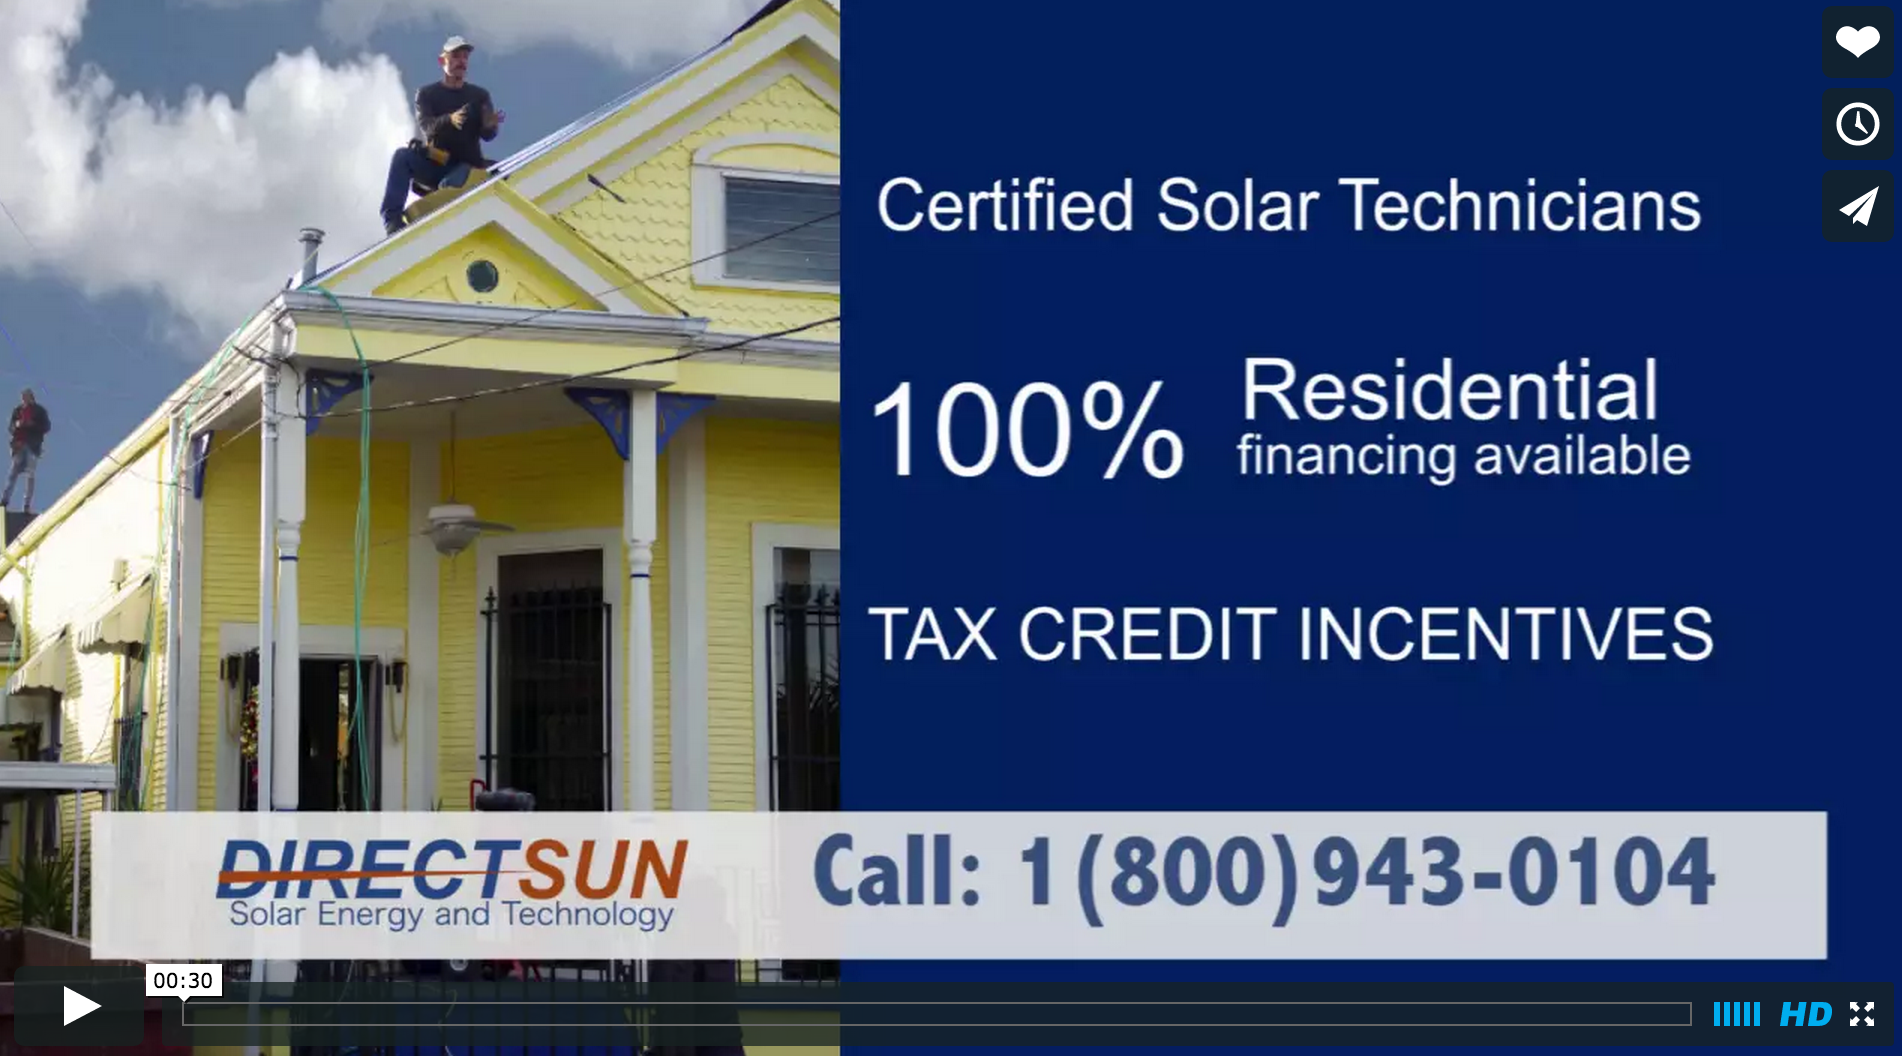 DirectSun Solar Energy and Technology